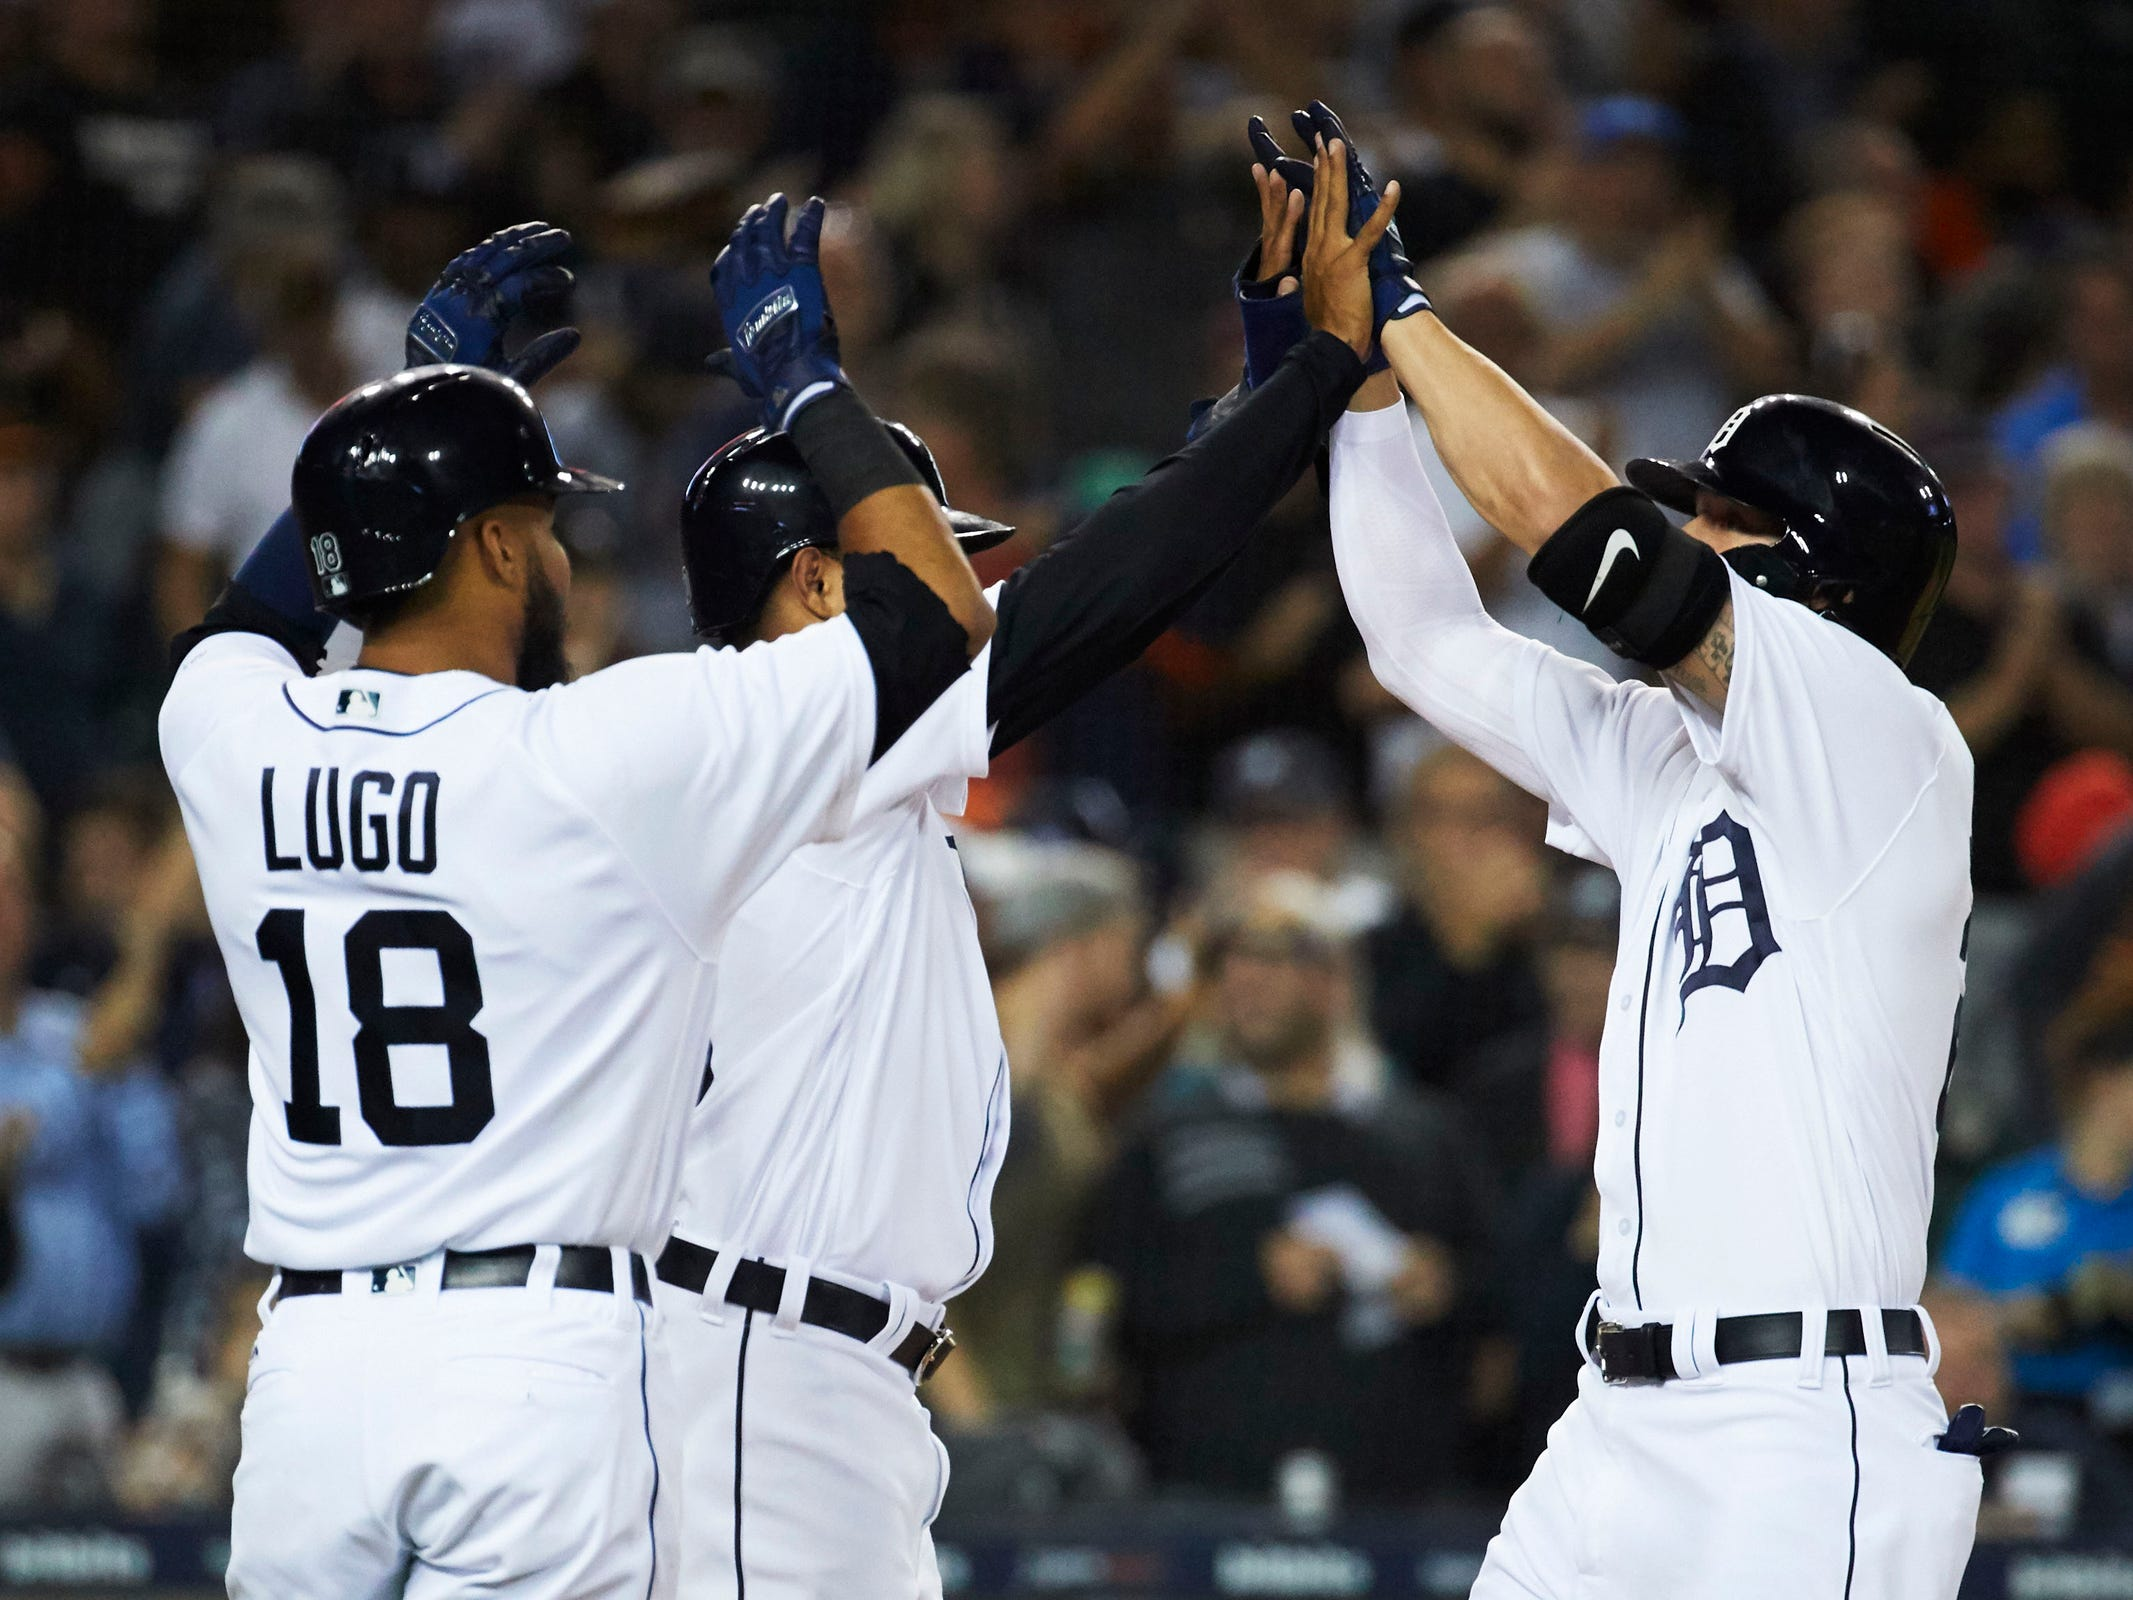 Detroit Tigers center fielder JaCoby Jones (21) receives congratulations from  second baseman Dawel Lugo (18) and first baseman Ronny Rodriguez (60) after he hits a three run home run in the fourth inning against the Houston Astros at Comerica Park, Tuesday, Sept. 11, 2018.